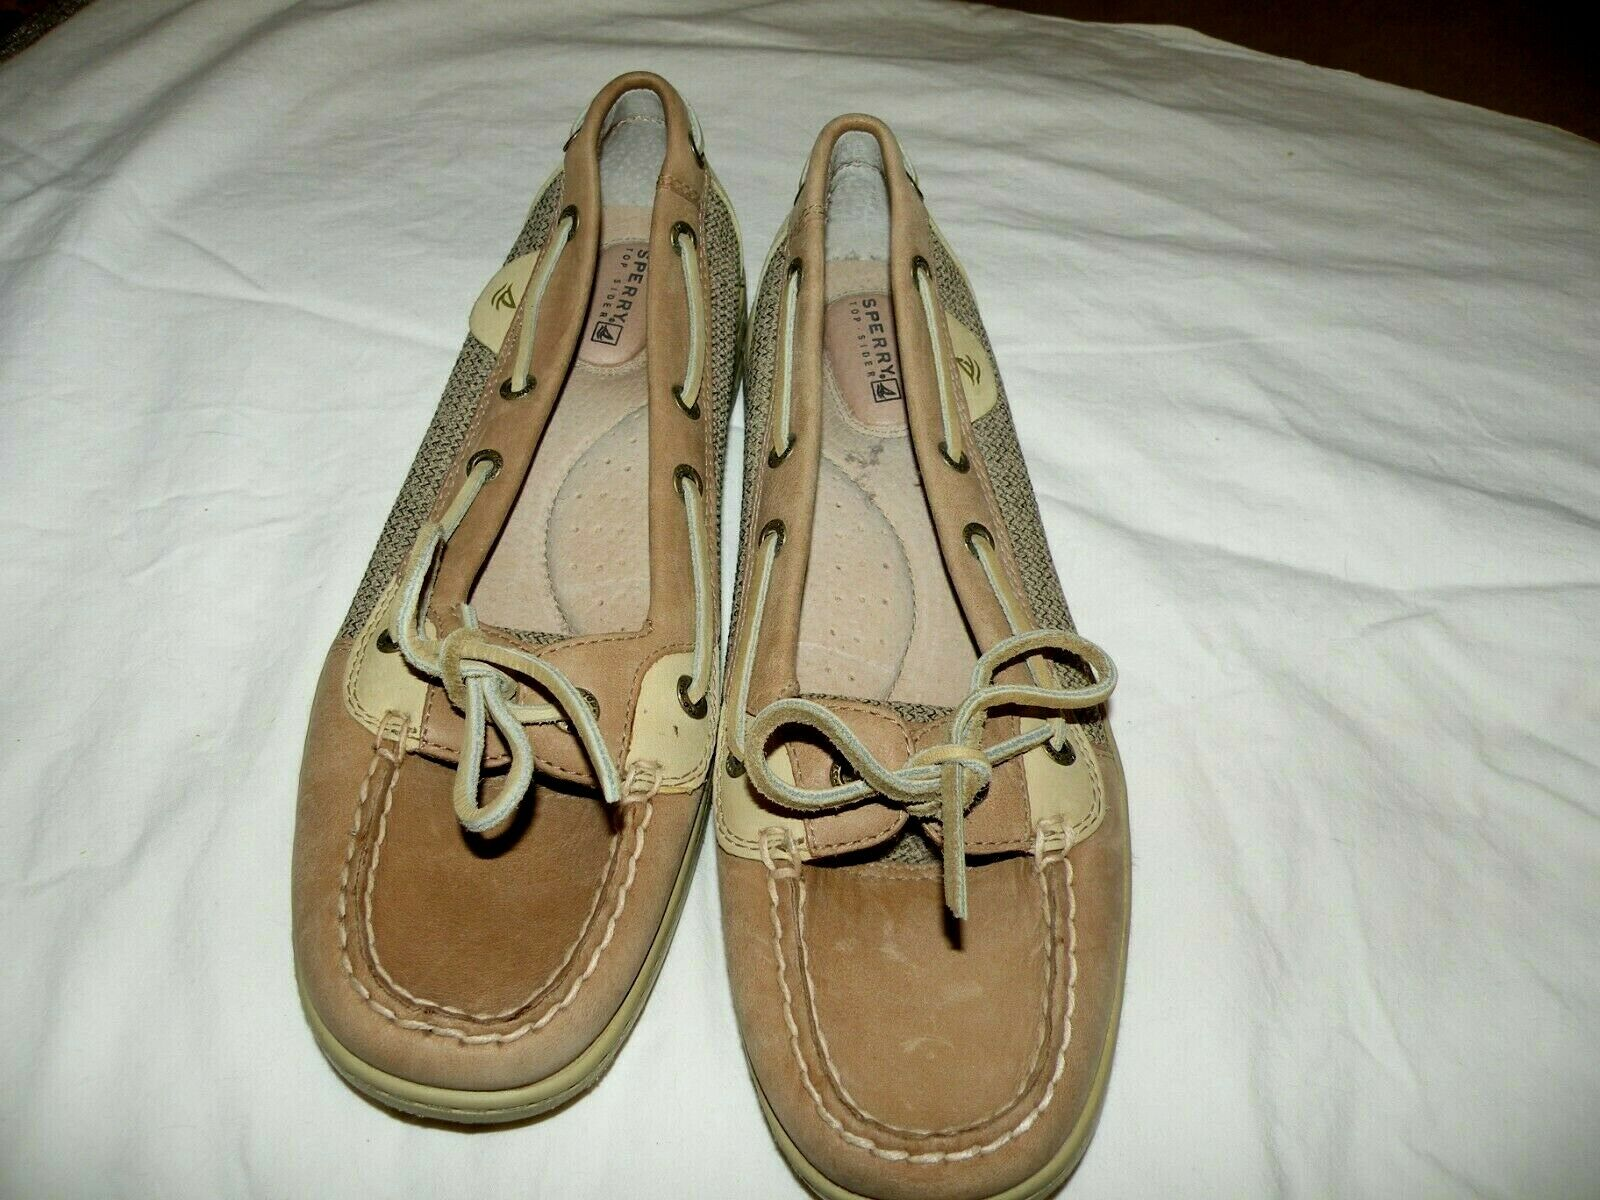 Sperry Top Sider Women's Leather Boat Shoes Size 9M